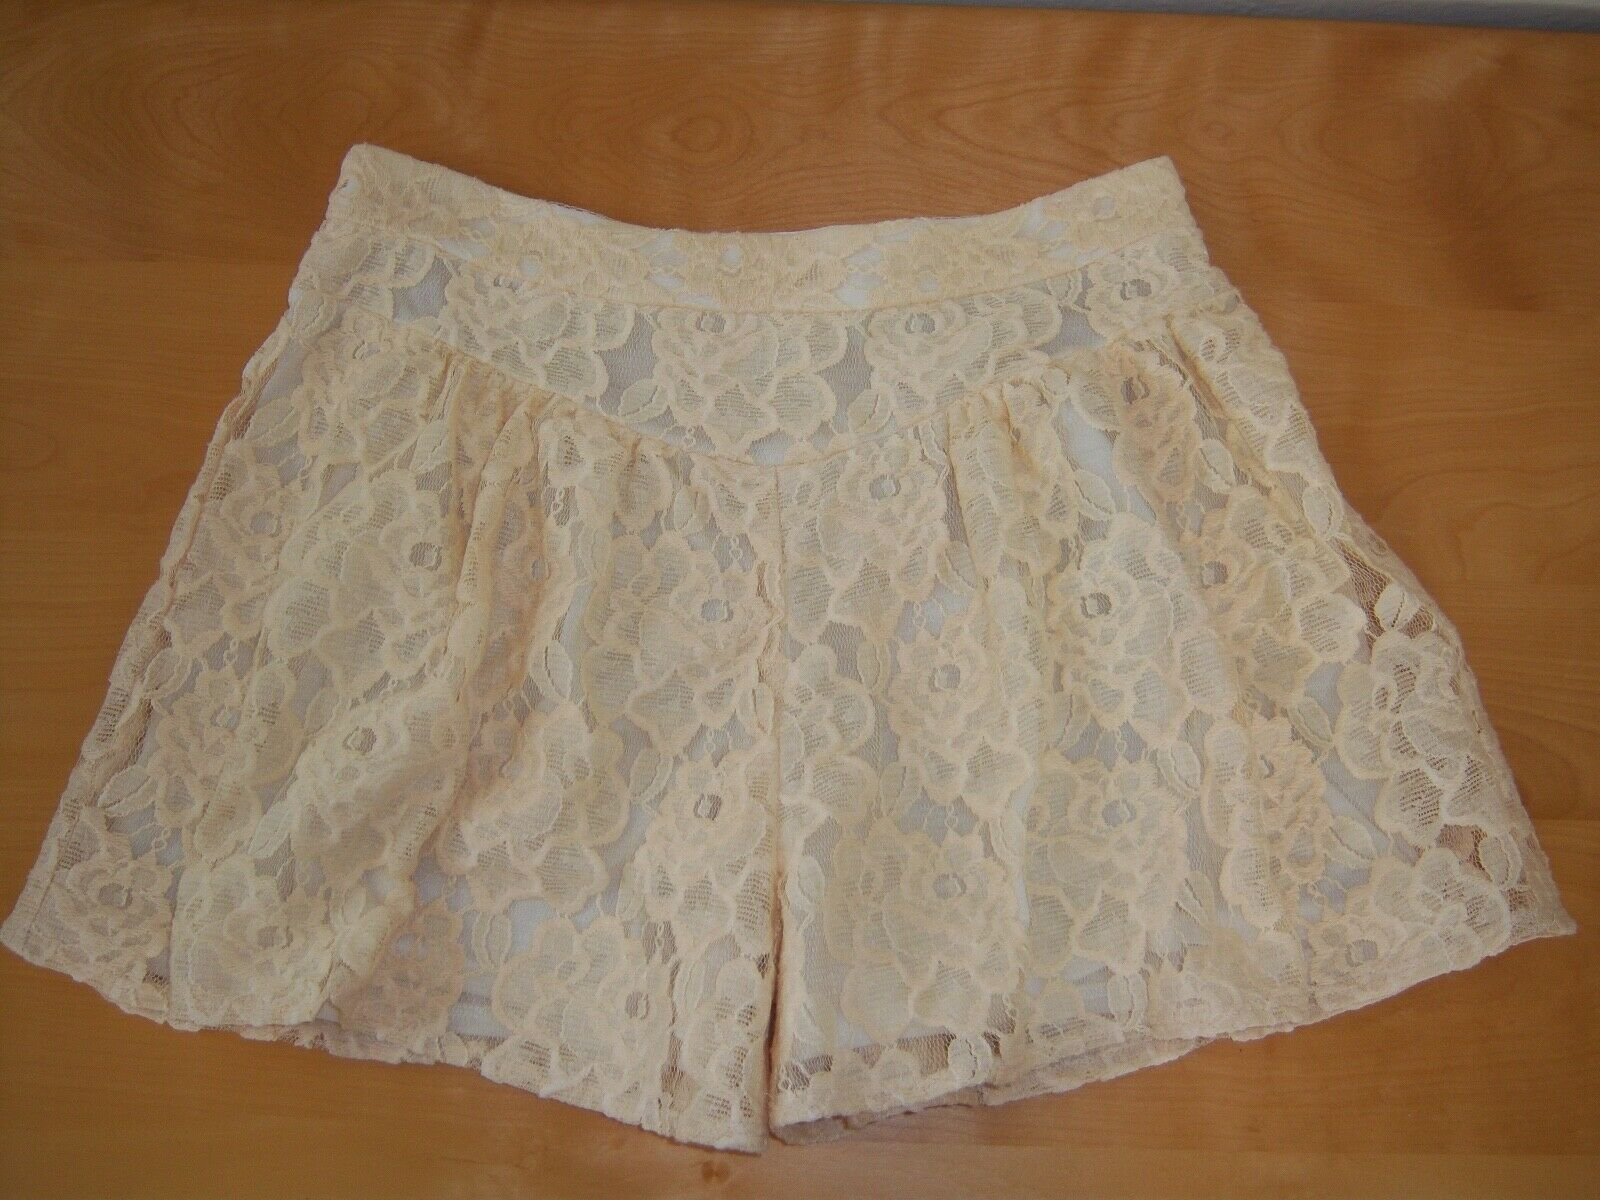 Anthropologie Ella Moss NWT Ivory Lace Shorts sz S Made in USA